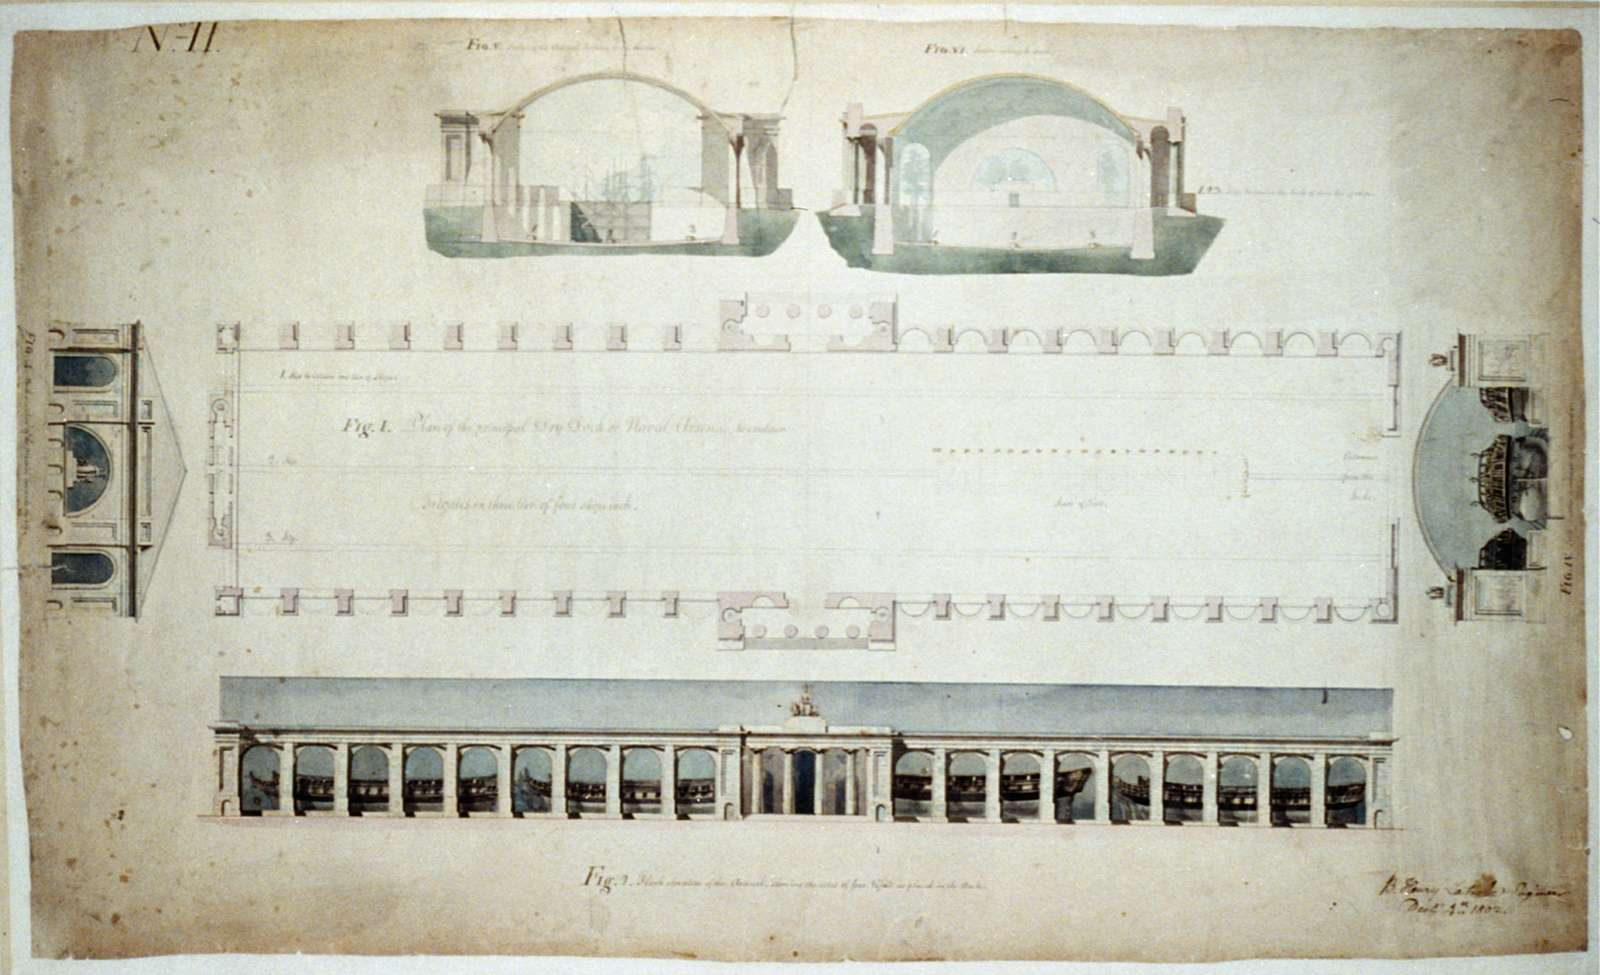 """[Navy yard (""""Dry Dock and Naval Arsenal""""), on the Anacostia River, Washington, D.C. Dry dock plan and arsenal elevation]"""